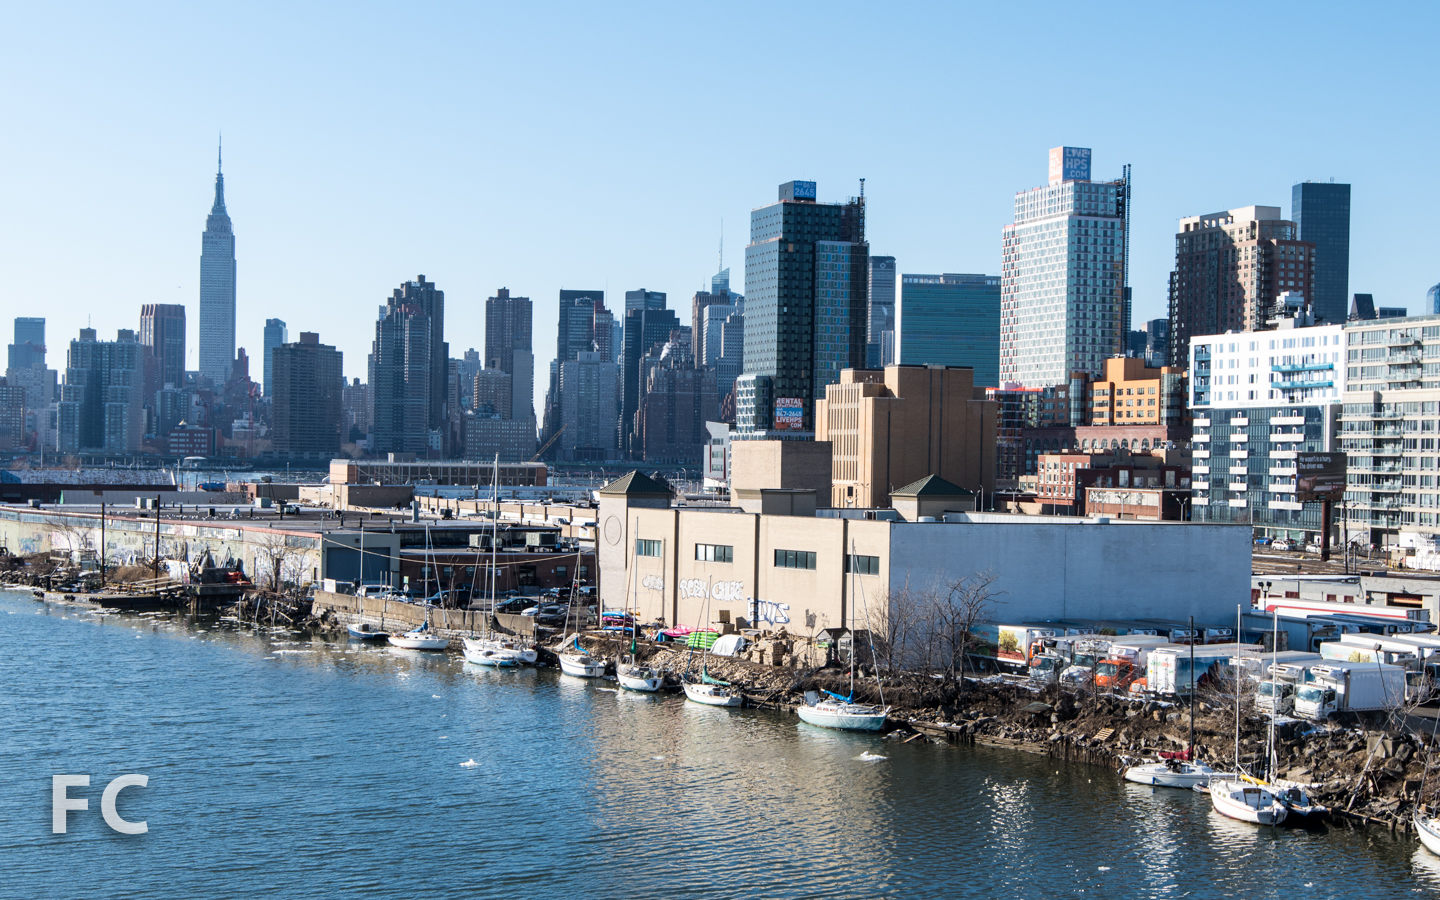 View of Hunters Point South (right) and the Manhattan skyline (left) from the Pulaski Bridge.